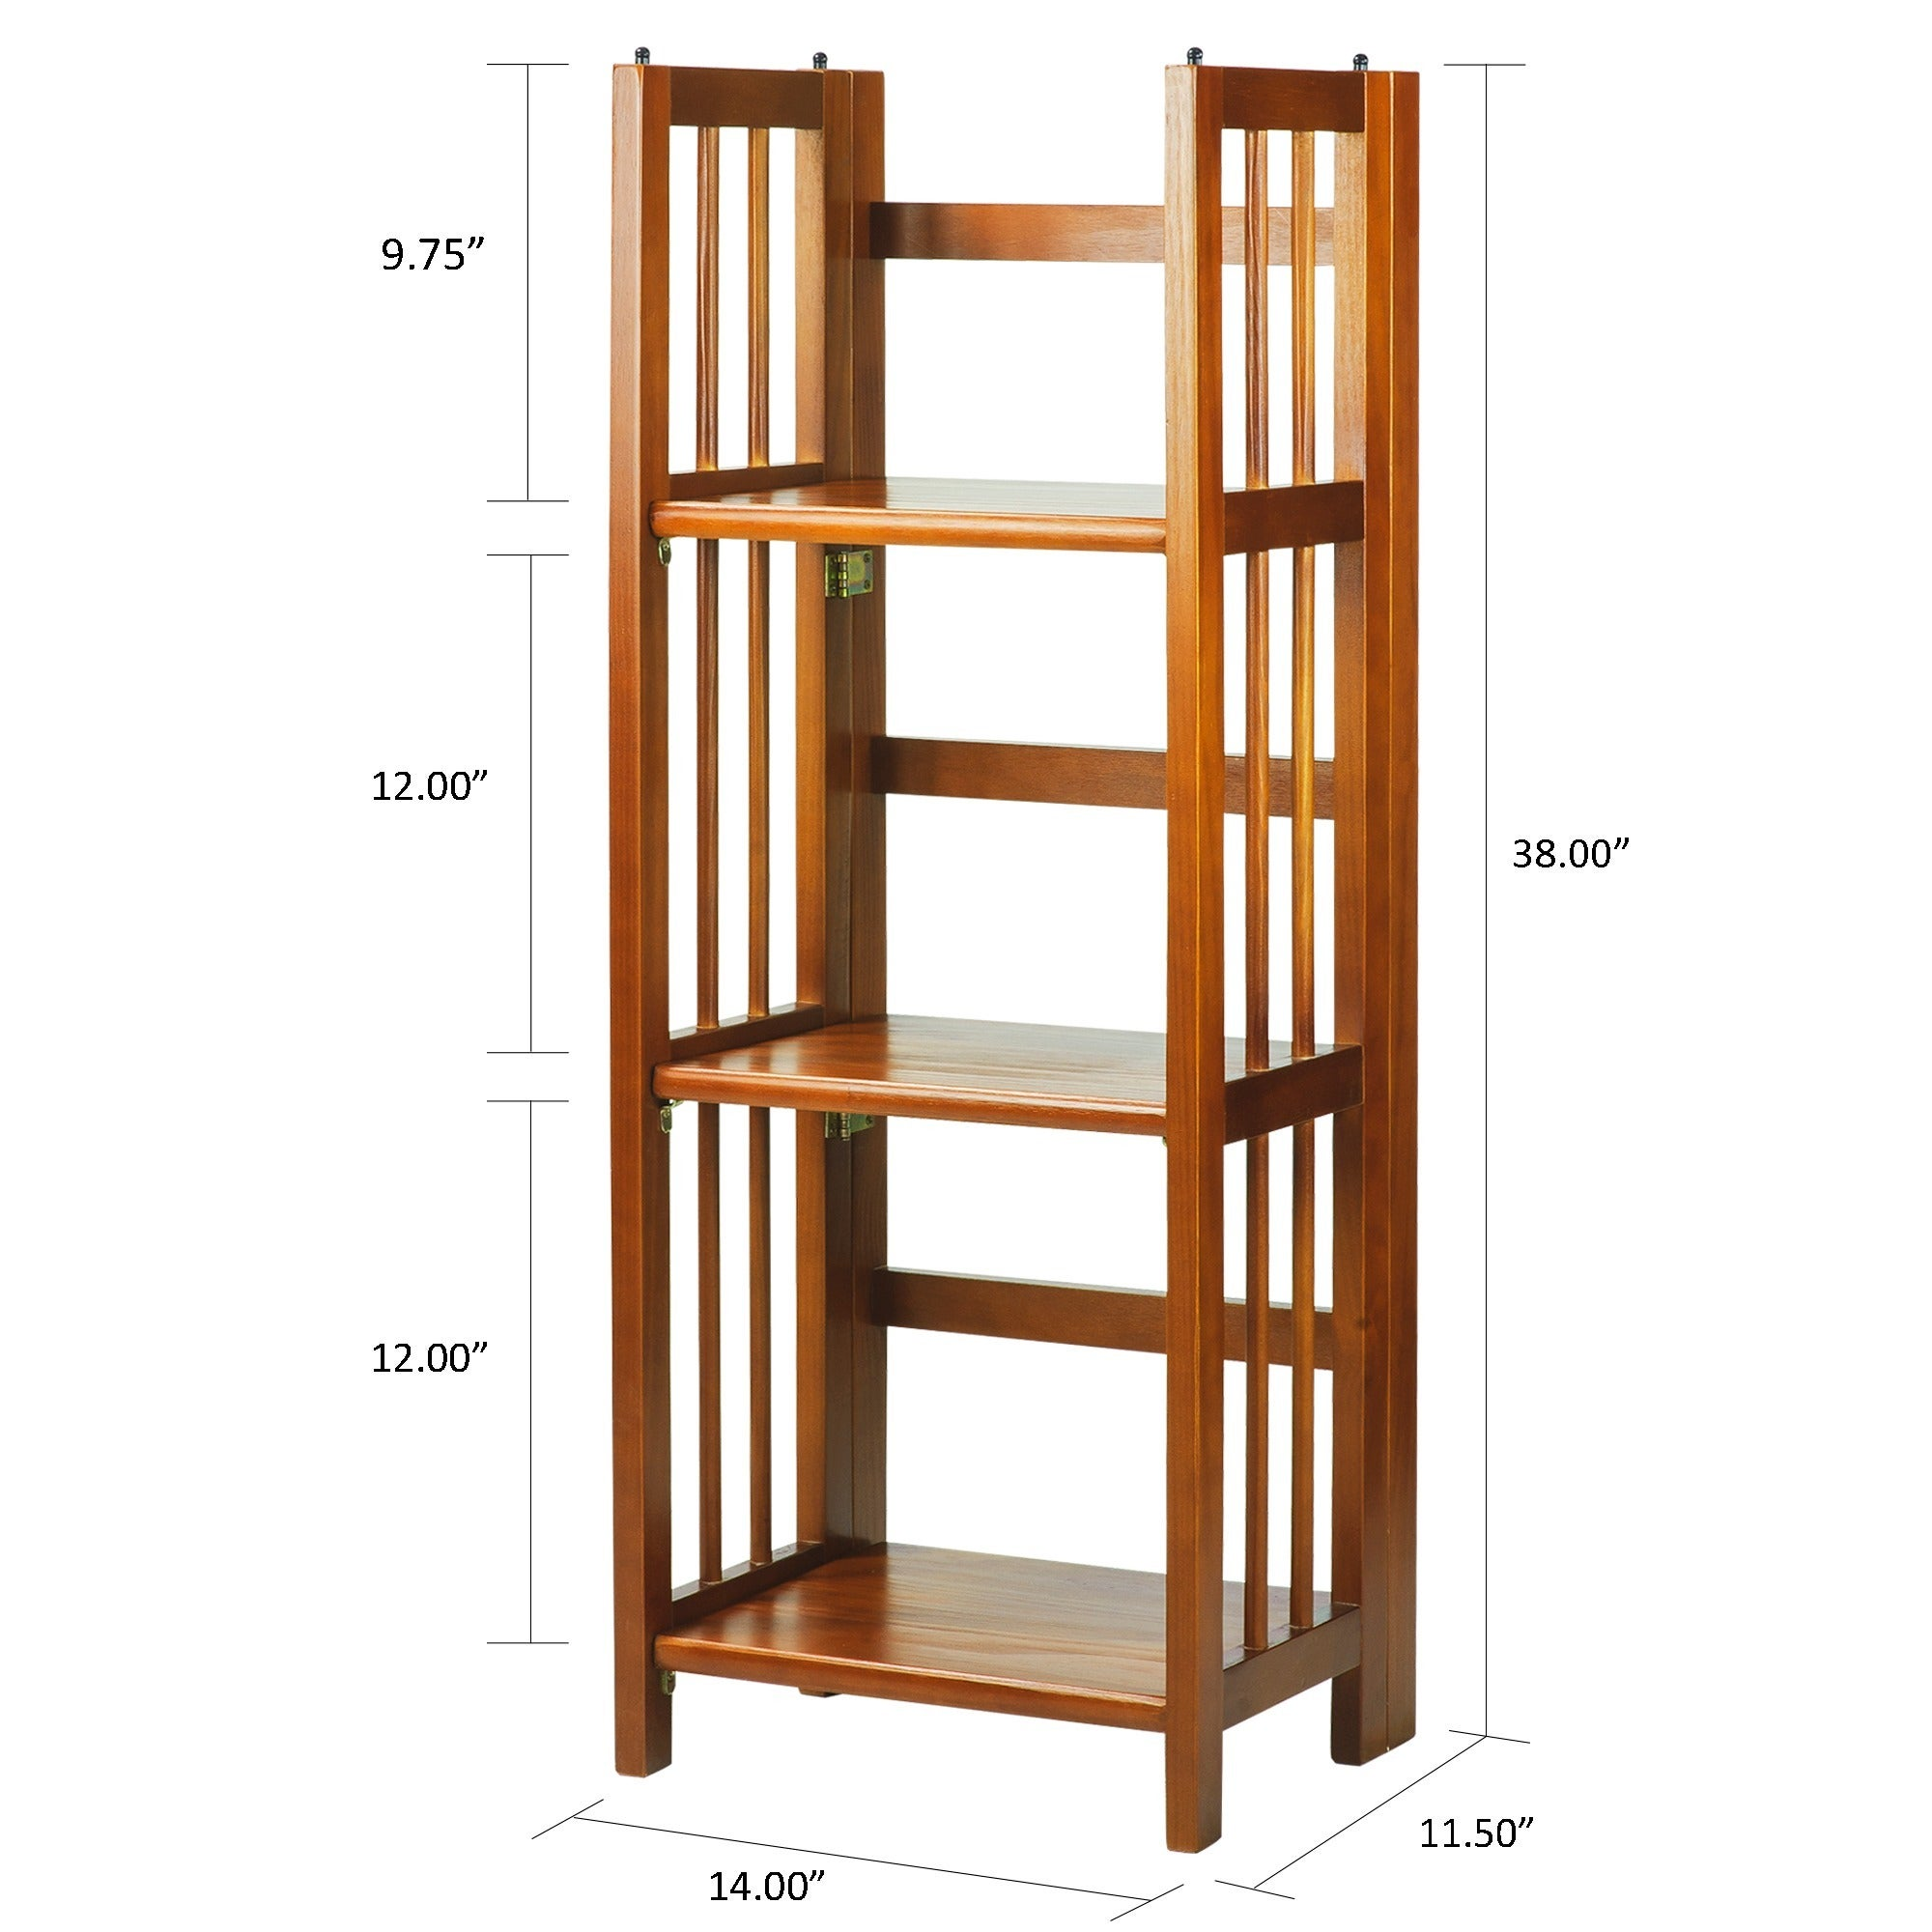 3 Shelf Folding 14 Inch Wide Bookcase Free Shipping Today 6986462